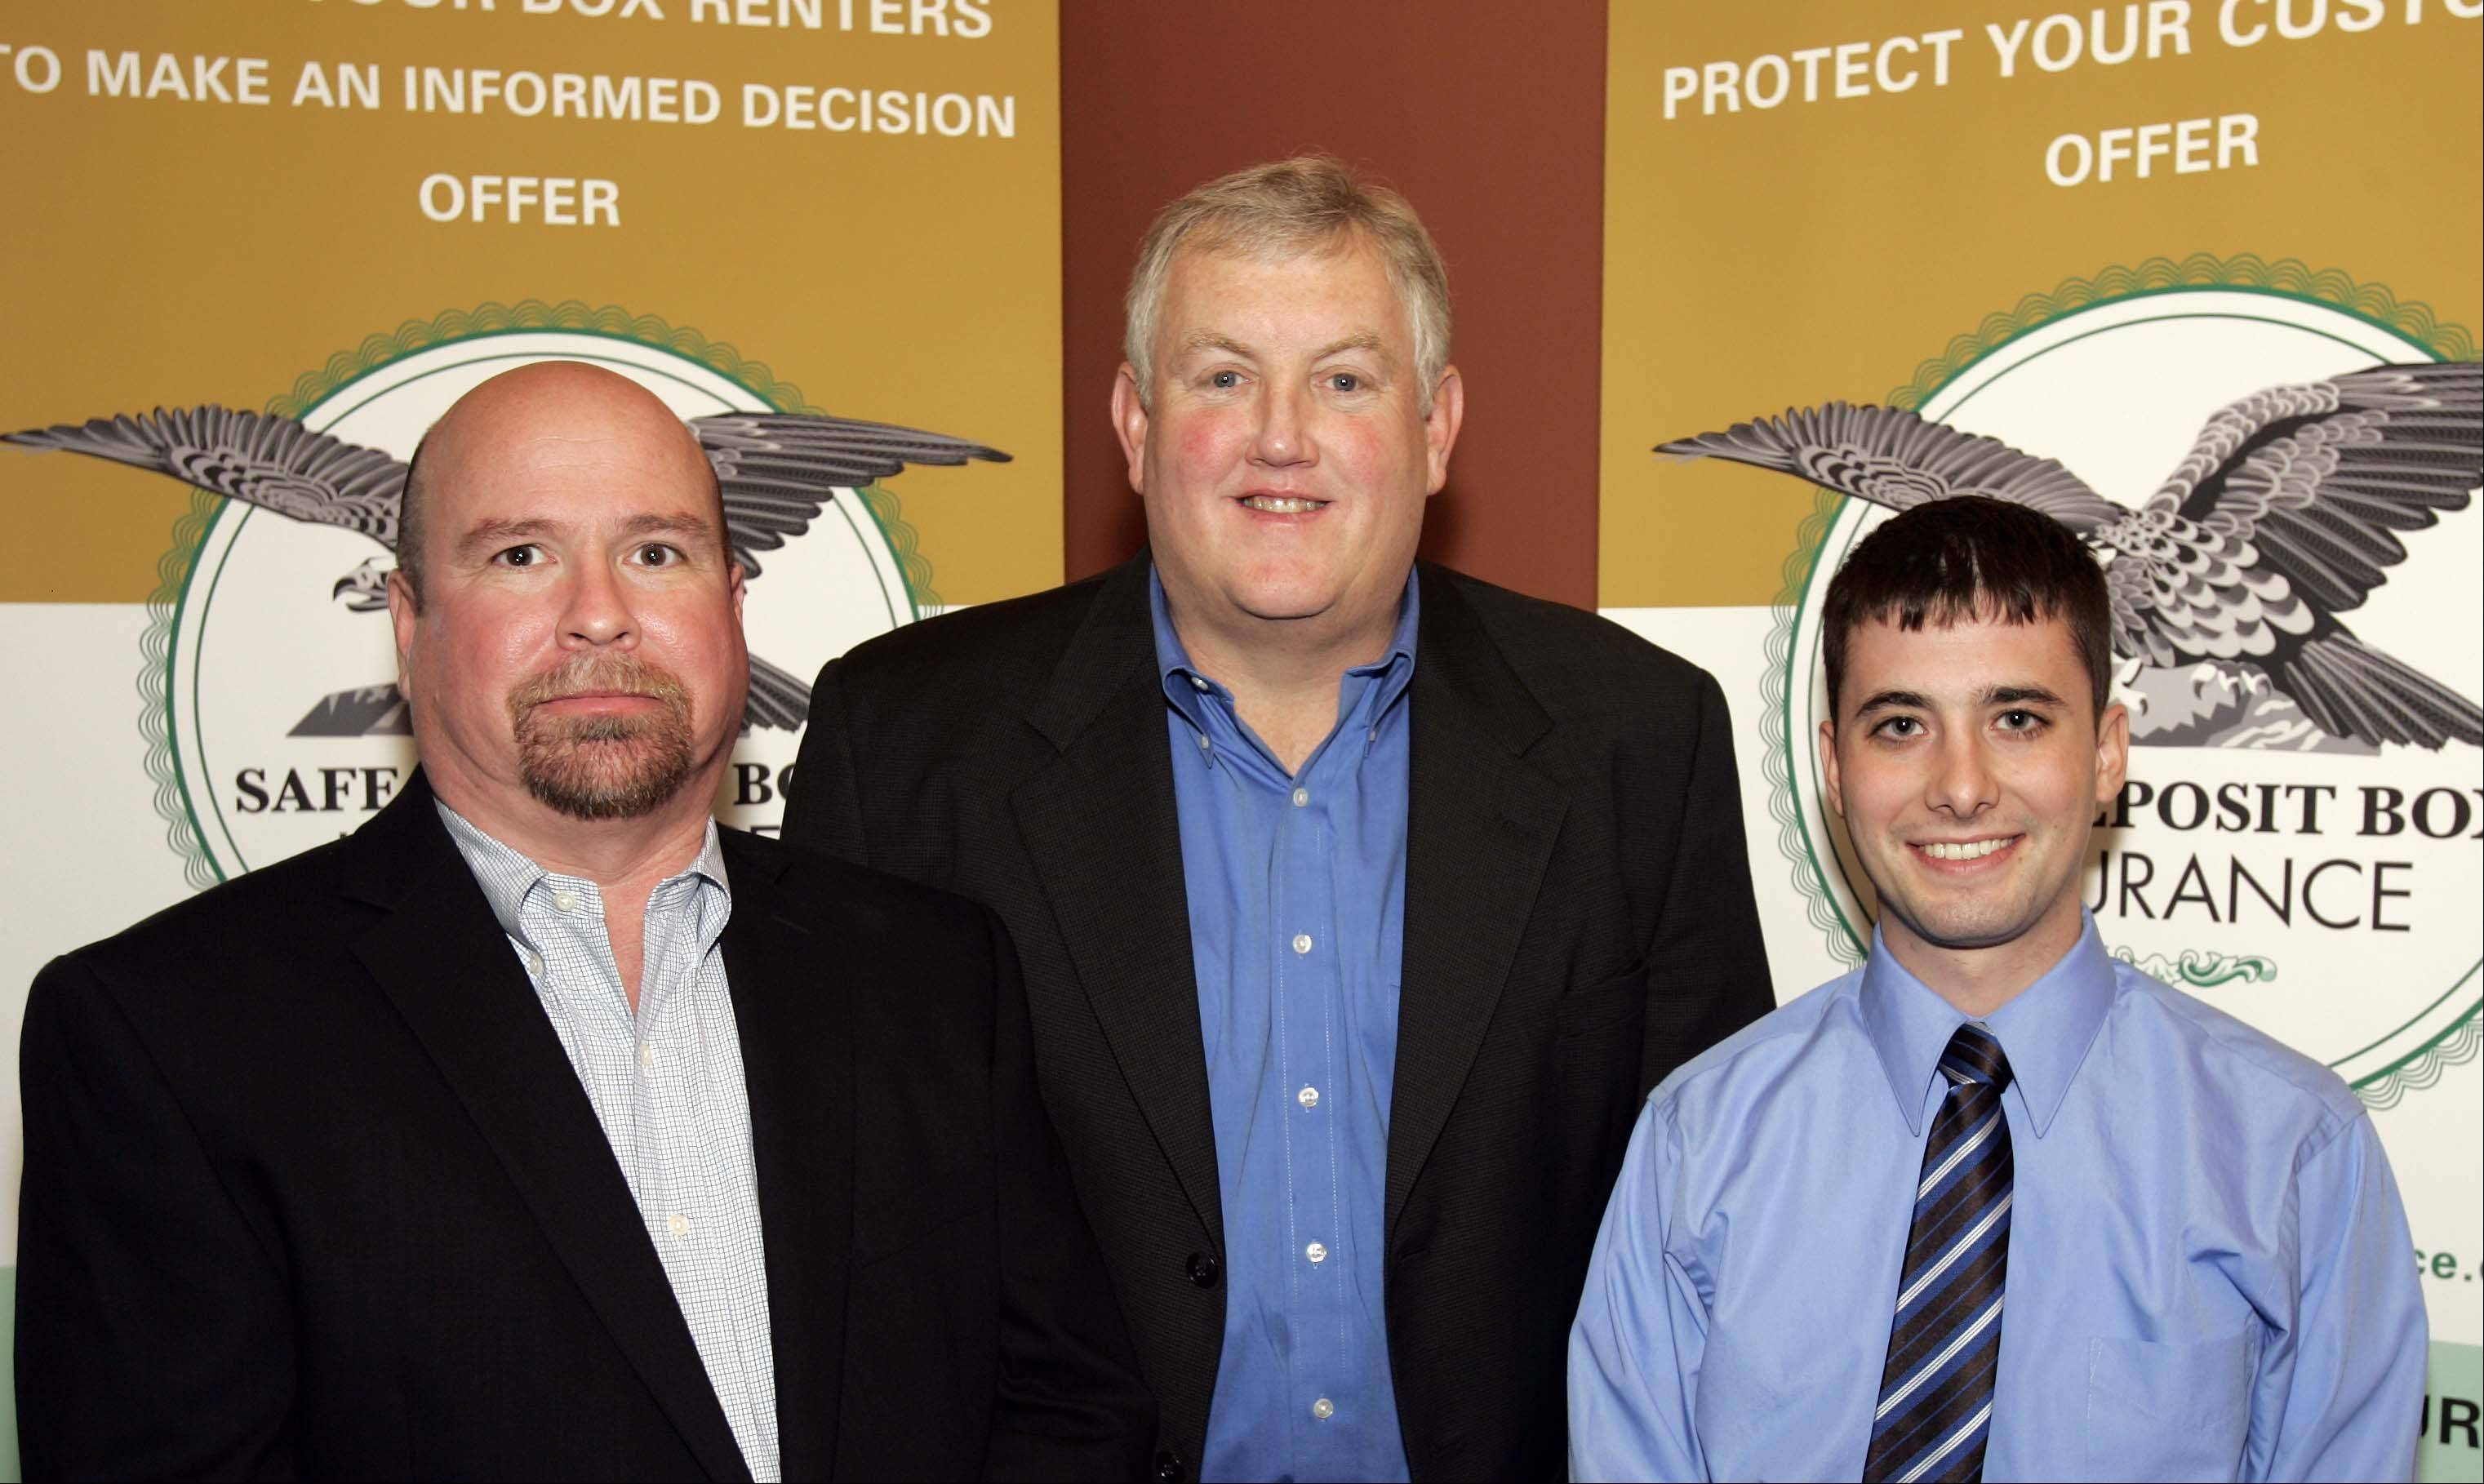 Mark Mason, left, Jerry Pluard, and Mike Bolahan, of Safe Deposit Box Insurance LLC.